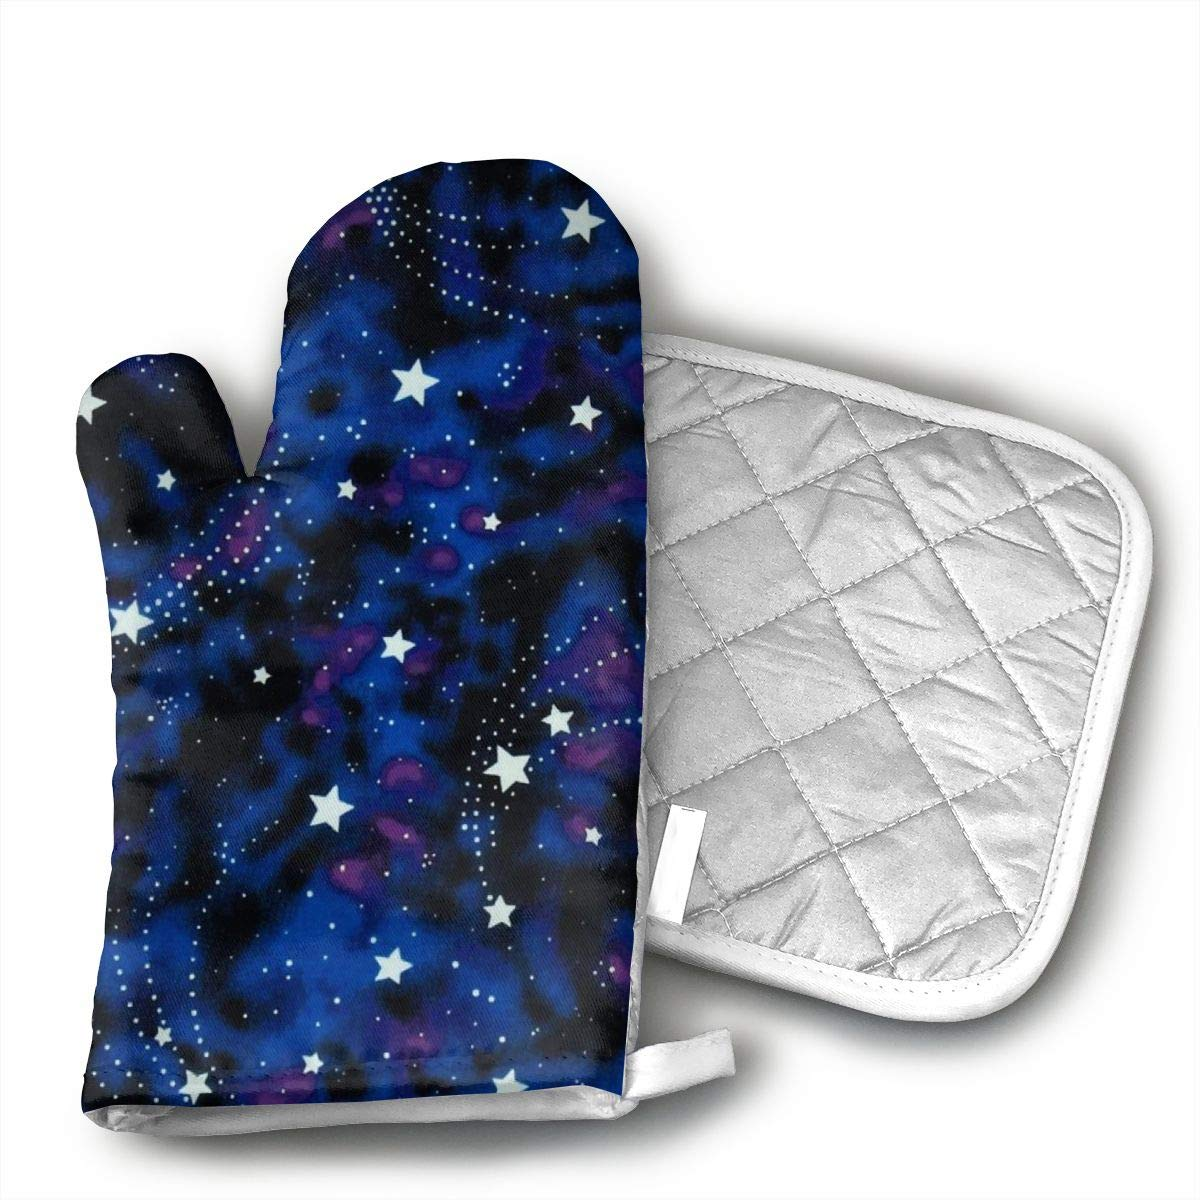 VFSFJKBG Galaxy Stars Magic Glow in The Dark Oven Gloves, High Heat Resistance, Machine Washable High Heat Resistant Polyester Filling for Thanks Giving, Christmas